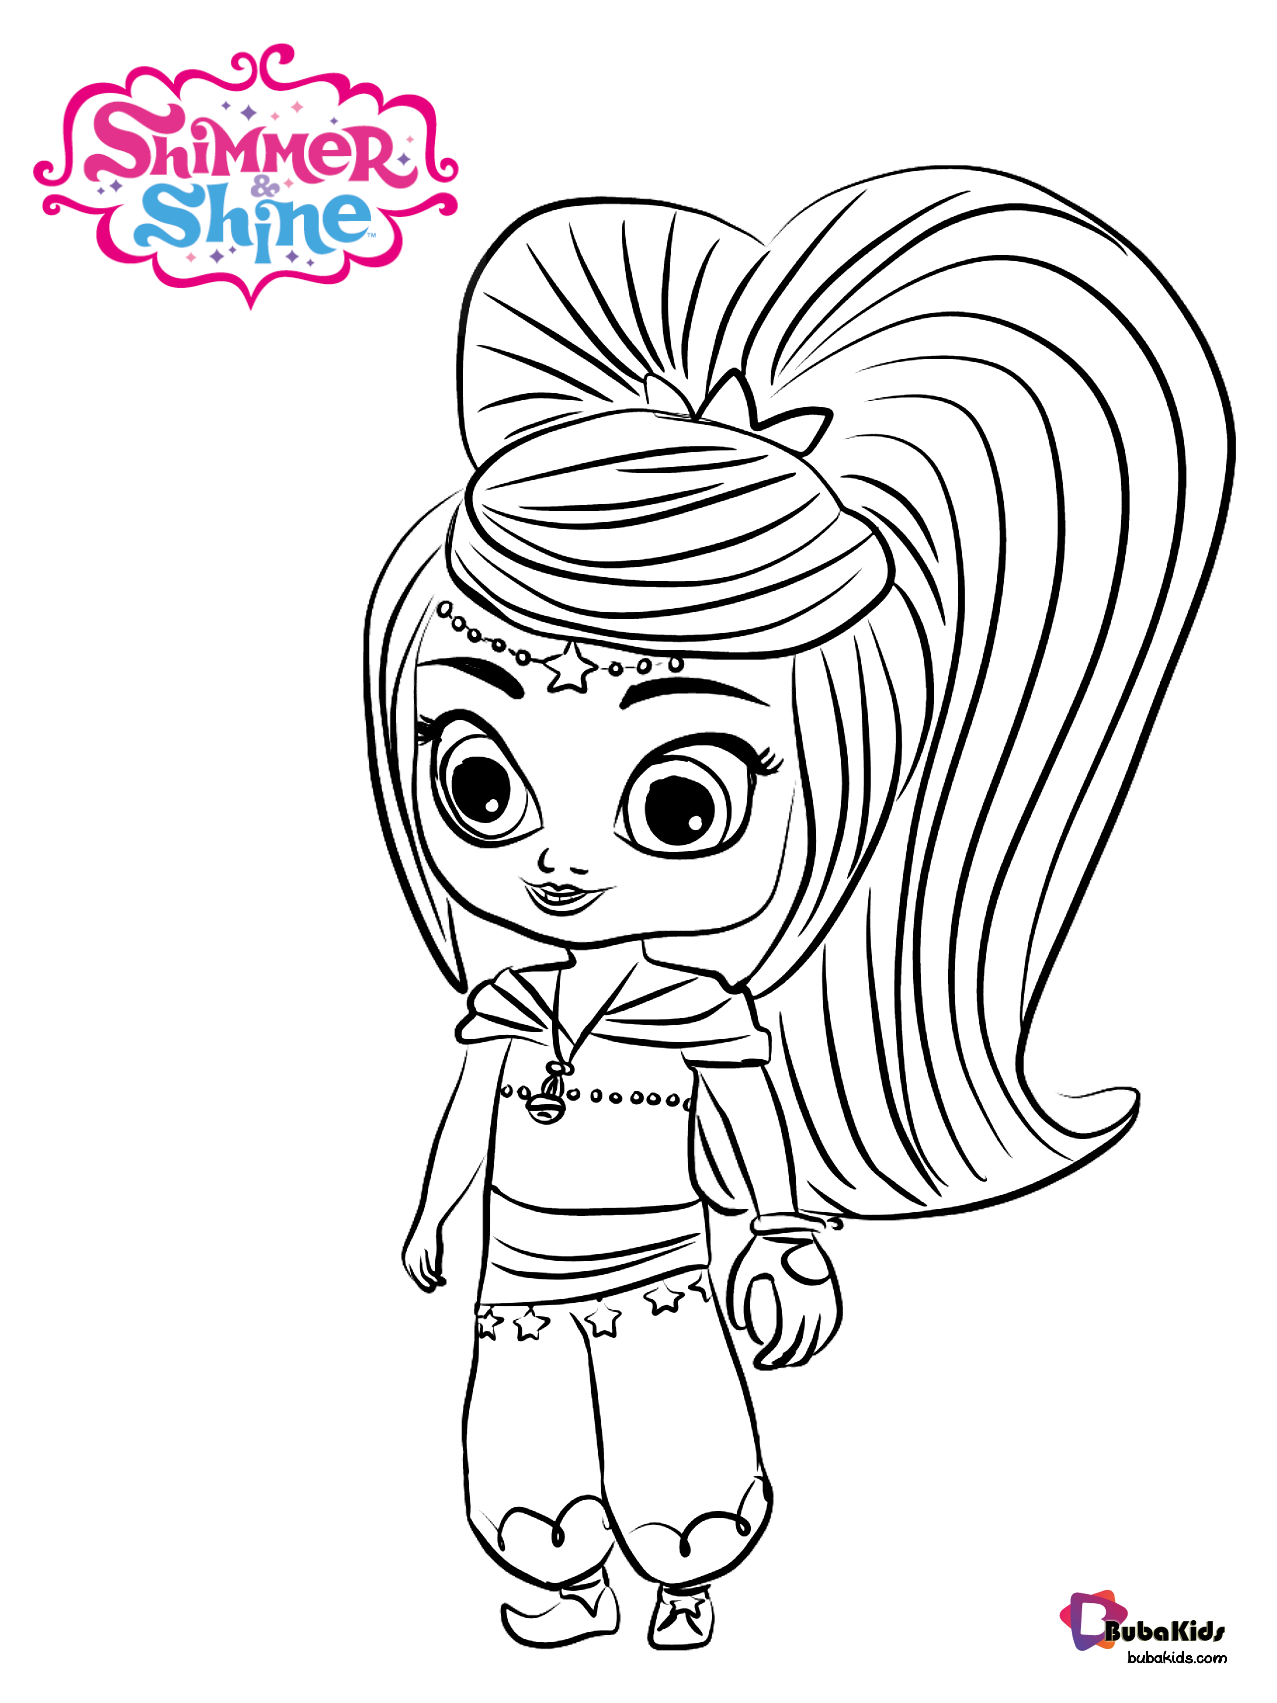 Leah Genie From Shimmer And Shine Coloring Page Collection Of Cartoon Coloring Pages For Teenage Printab Coloring Pages Coloring Pages To Print Coloring Books